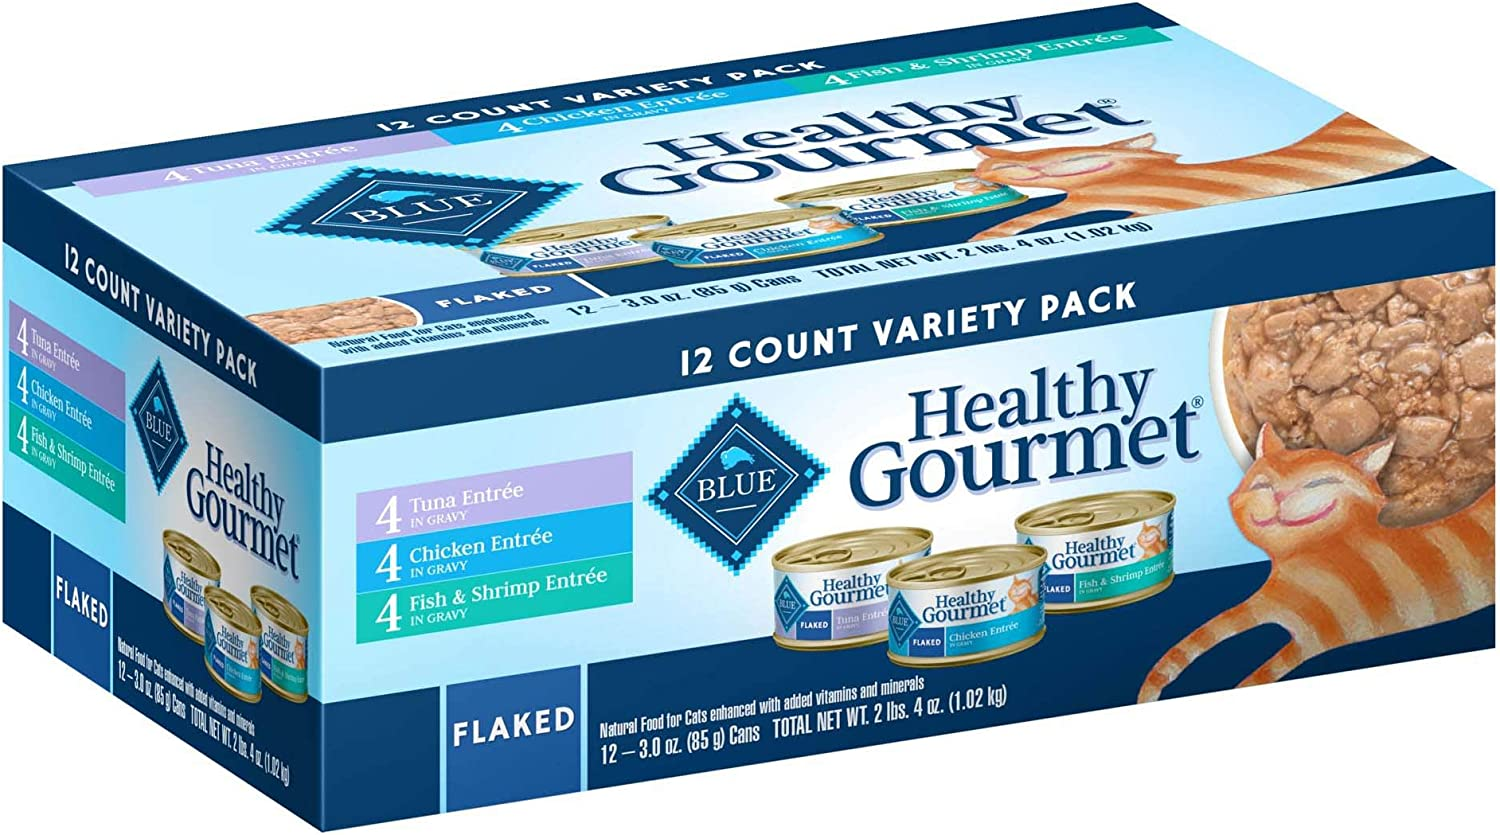 Blue Buffalo Healthy Gourmet Adult Tuna, Chicken, Fish & Shrimp Flaked Variety Pack Wet Cat Food